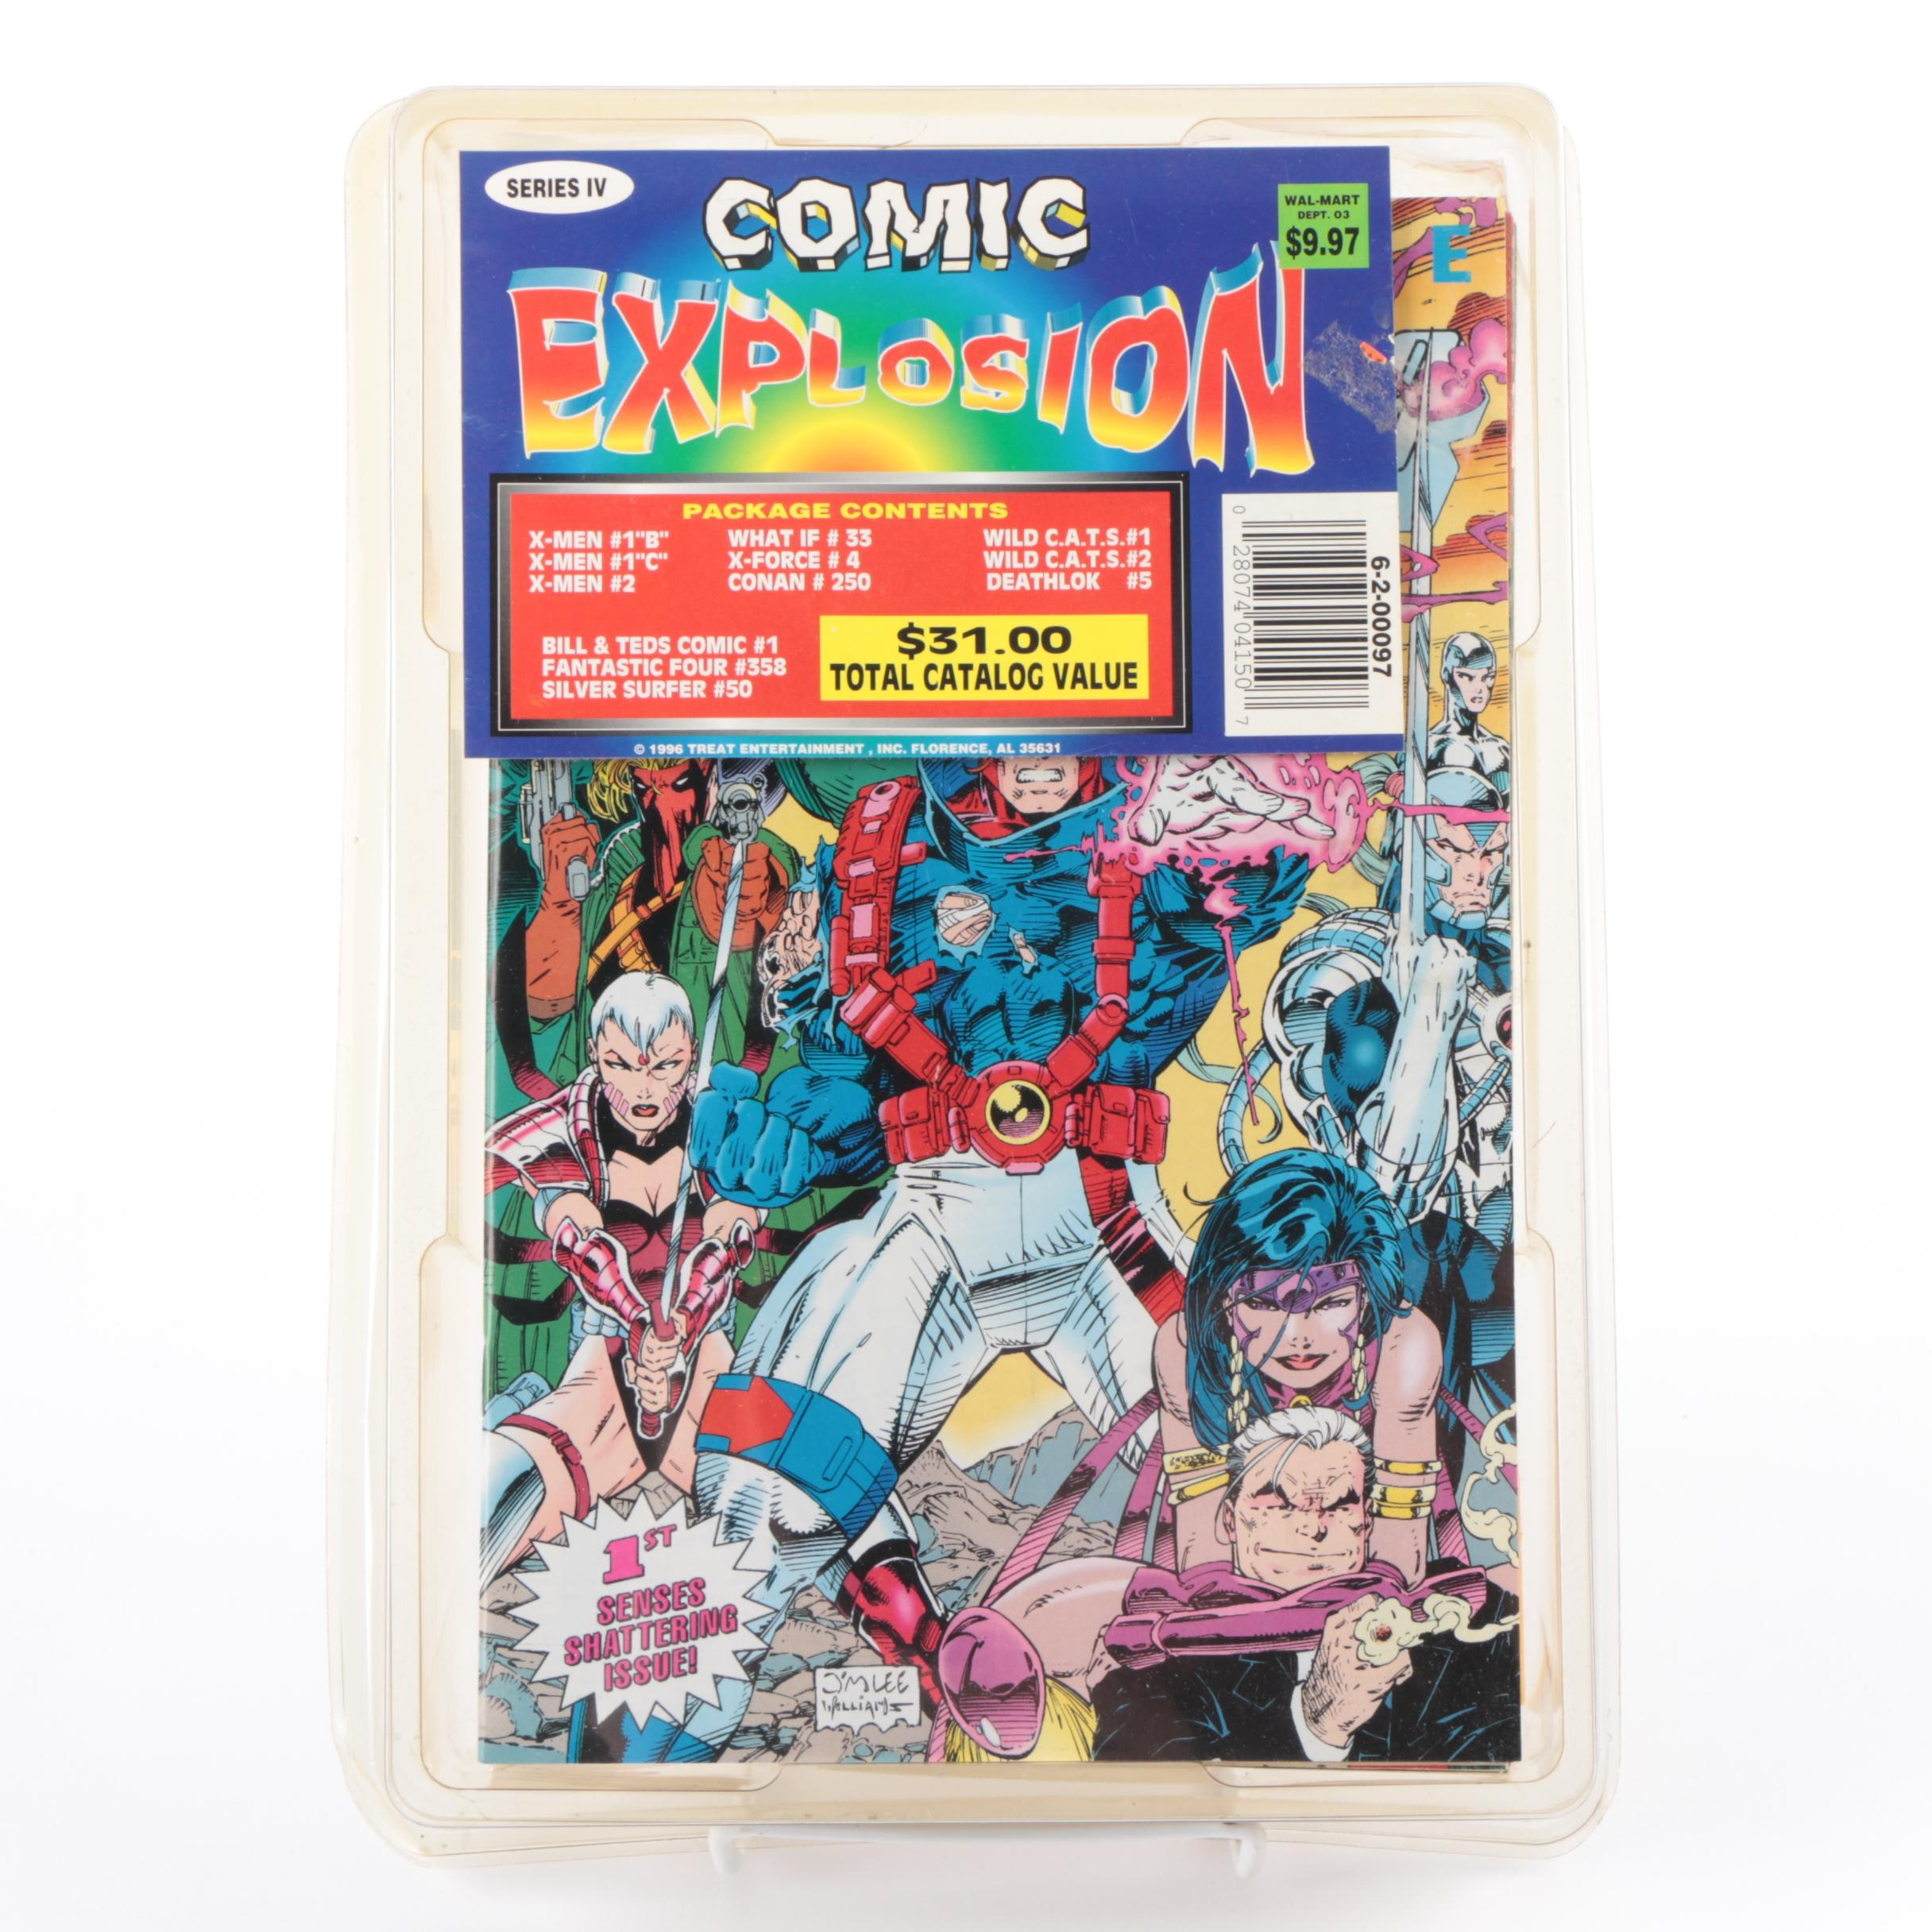 """1996 Marvel """"Comic Explosion"""" Collection Including """"X-Men"""" and """"WildC.A.T.S."""""""